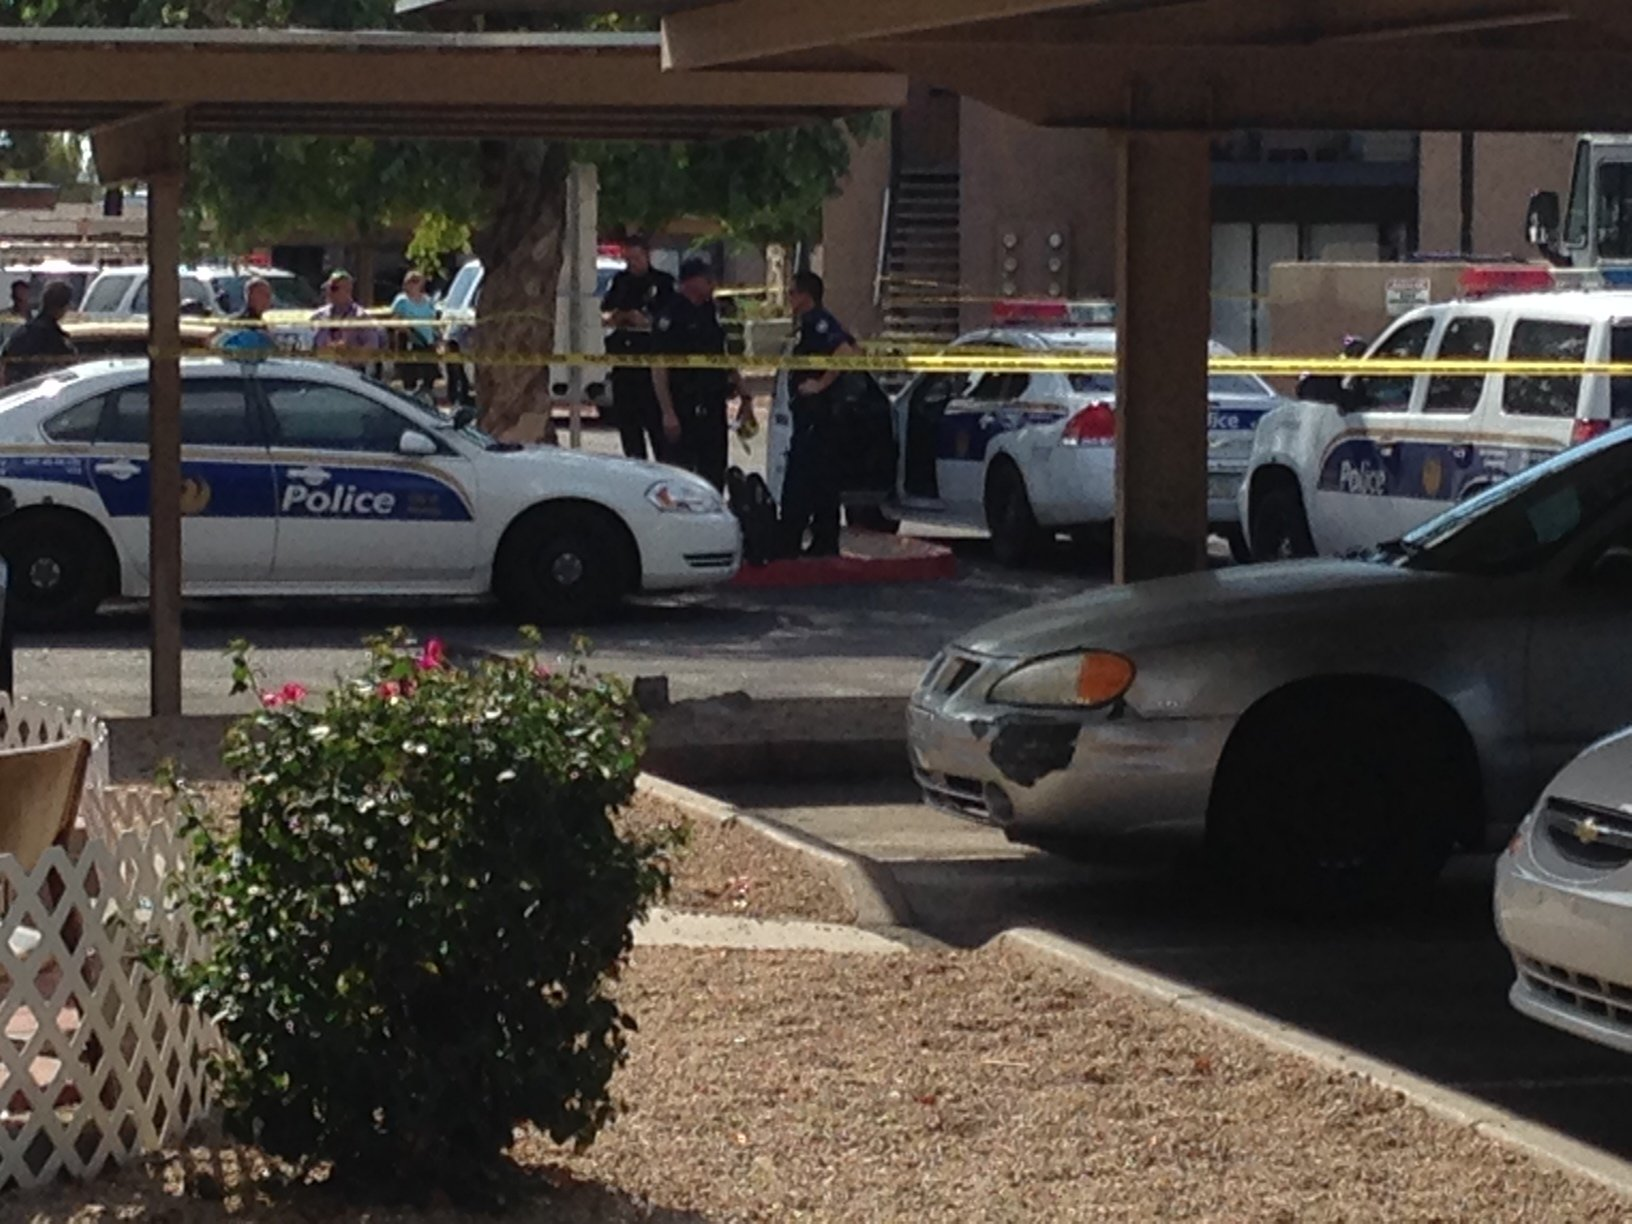 © Officer-involved shooting in the 3800 block of N. Maryvale Pkwy. (Source: CBS 5 News, Sean Gates)